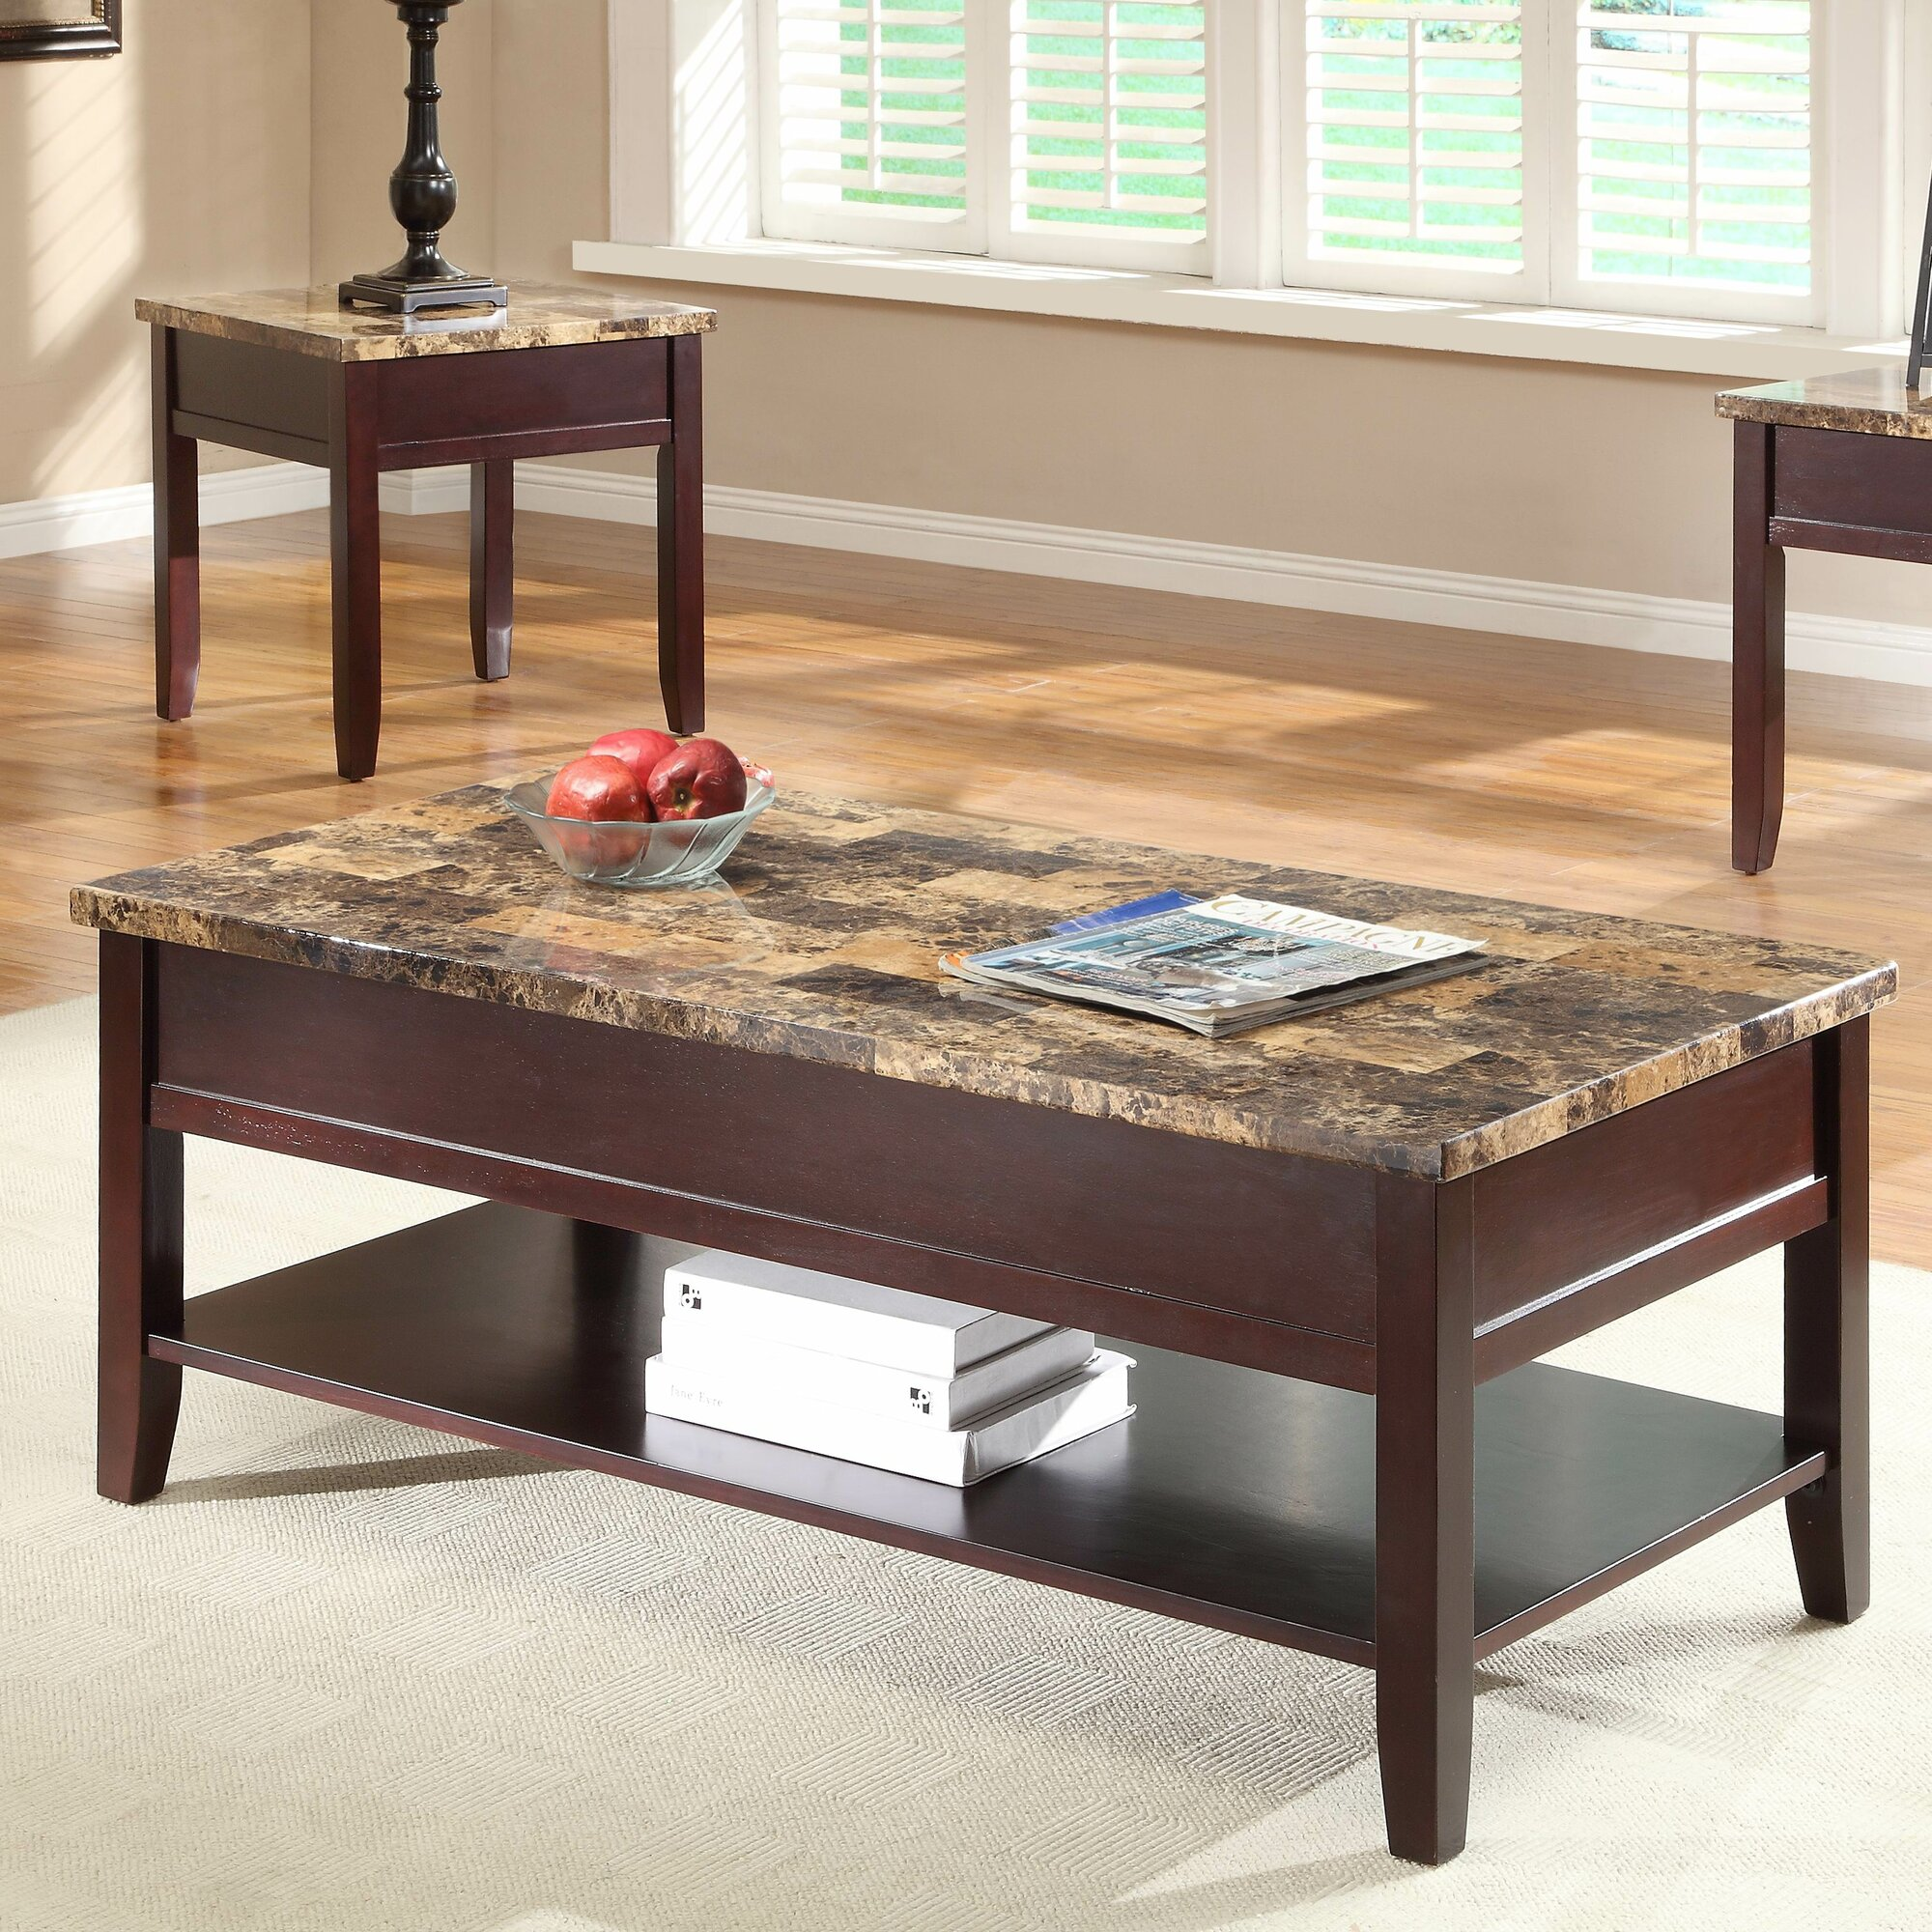 Bassett Coffee Table Lift Top Midcentury Modern Square Walnut